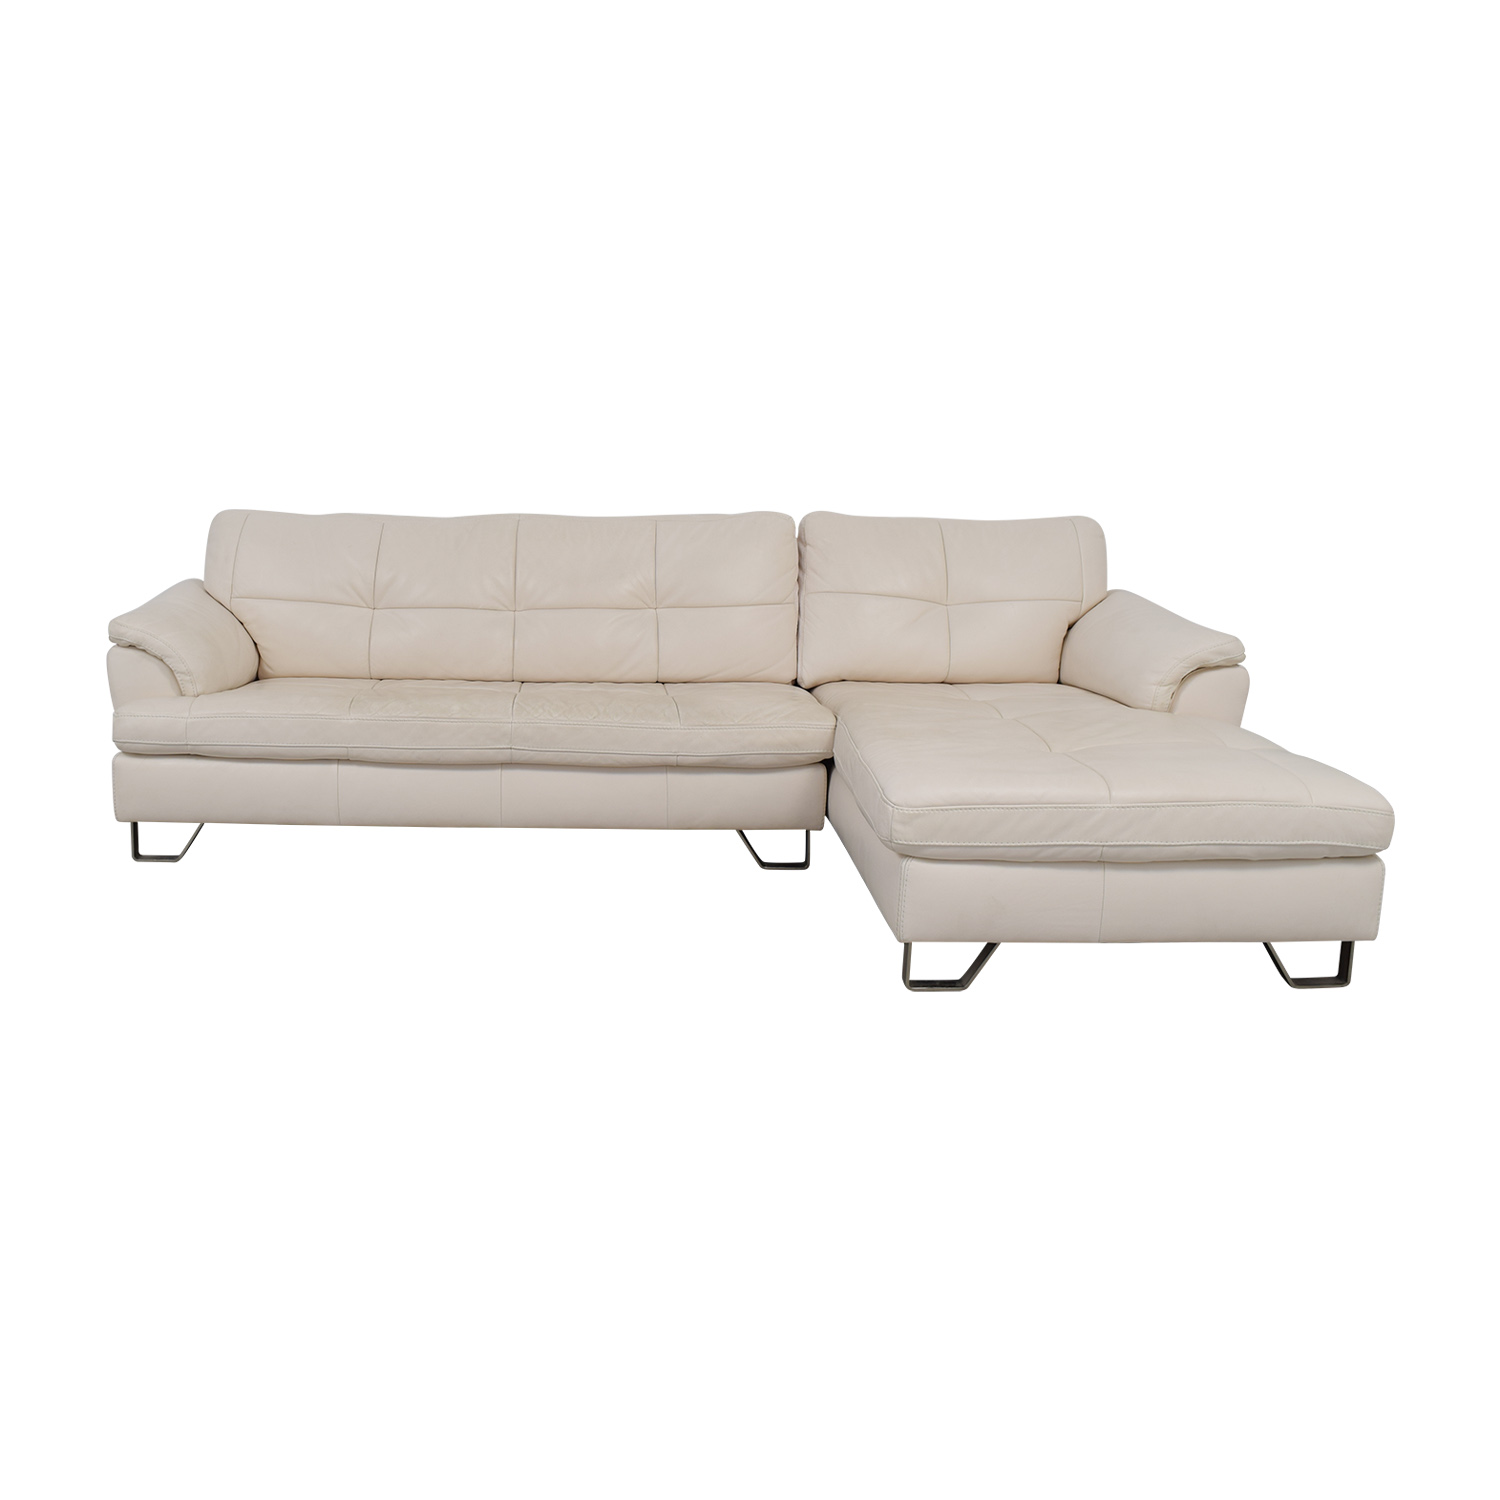 88% OFF - Ashley Furniture Ashley Furniture White Leather Chaise Sectional  / Sofas